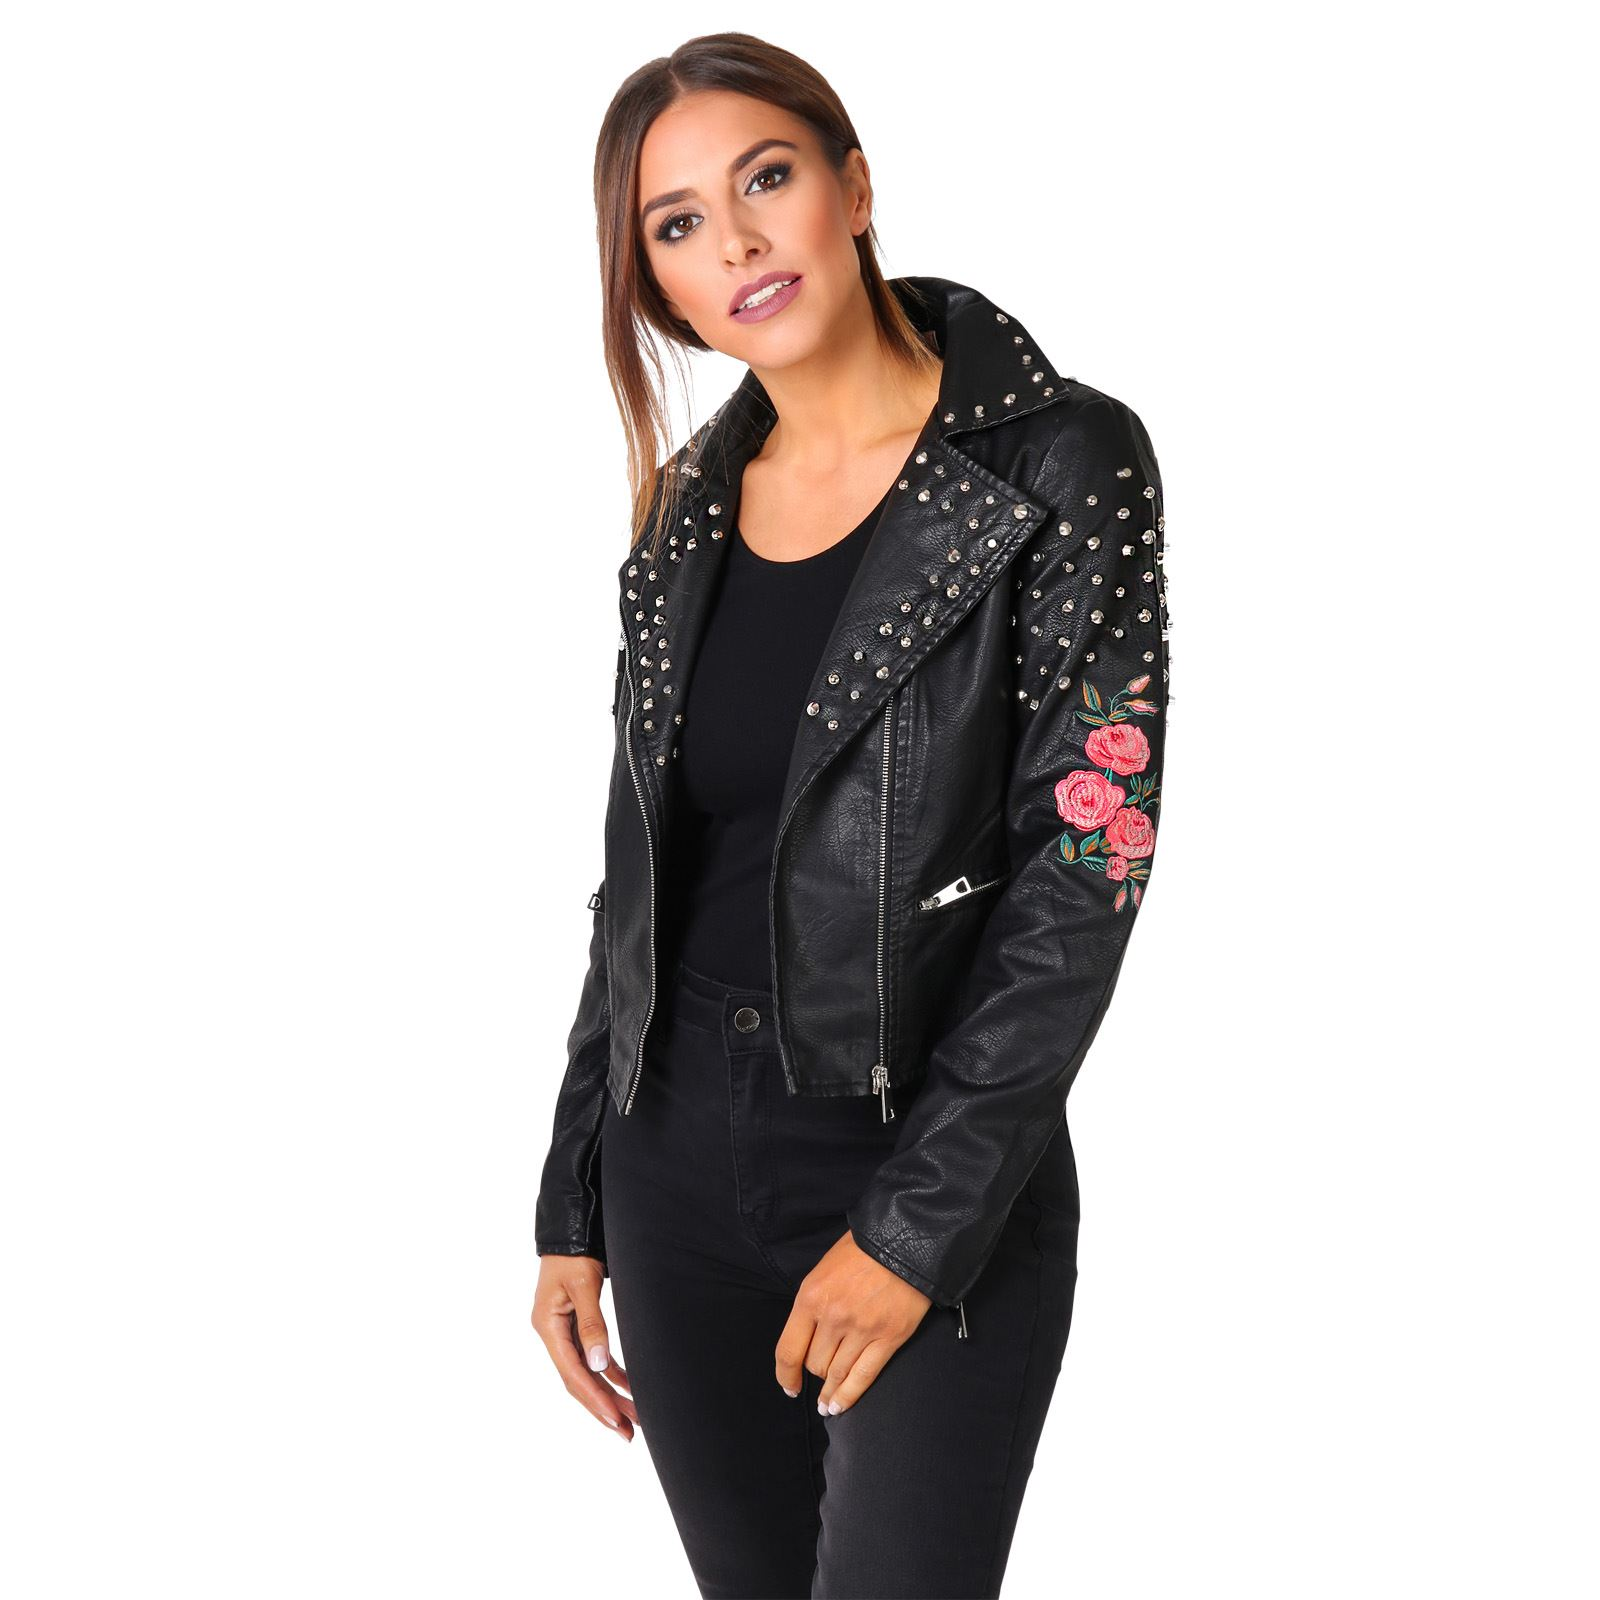 femmes veste cuir perfecto jacket manteau biker motard bomber brod e clous ebay. Black Bedroom Furniture Sets. Home Design Ideas